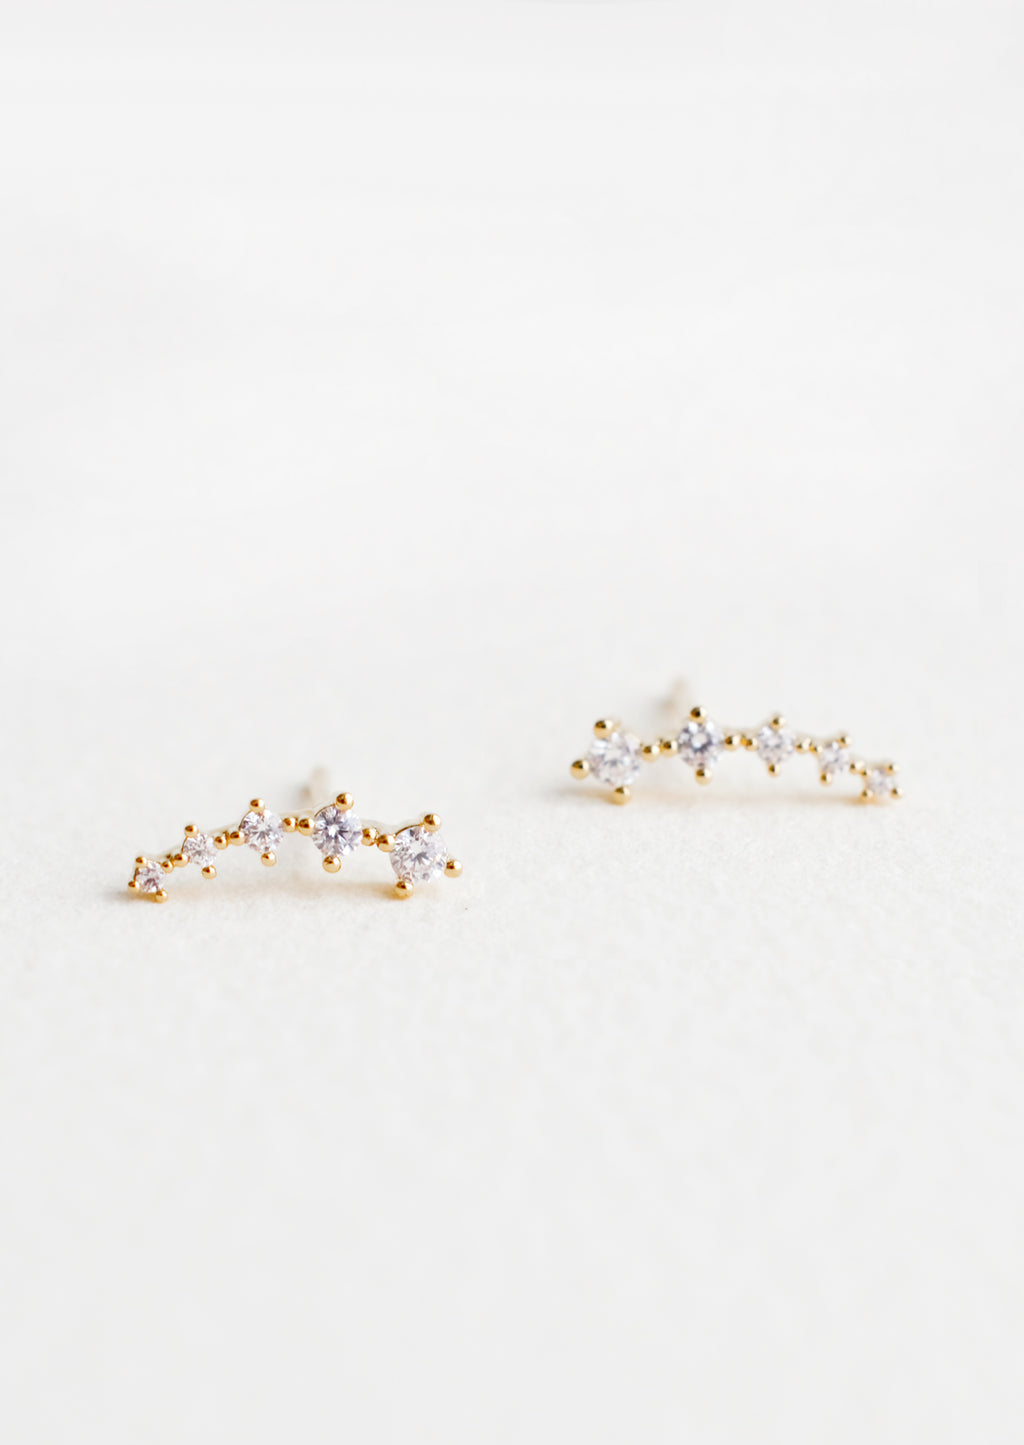 1: Stud earrings with clear crystals in incremental sizes, designed to climb up the ear